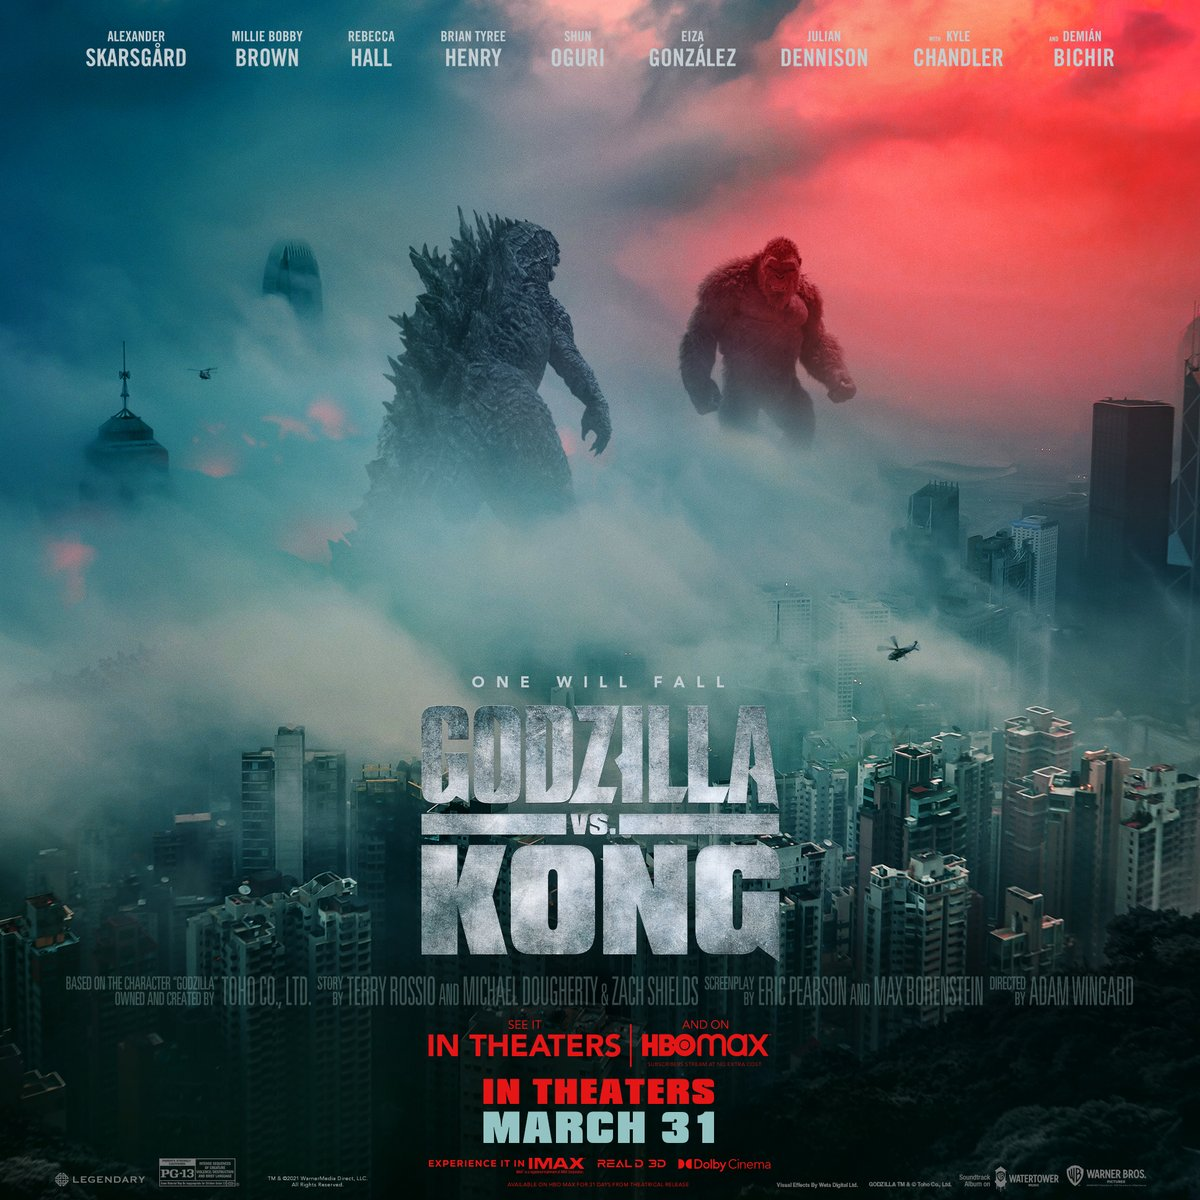 In this epic battle of monsters, who will come out on top? Godzilla vs. Kong is in theaters and streaming exclusively on HBO Max March 31 at 12:01 am PT/3:01 am ET.